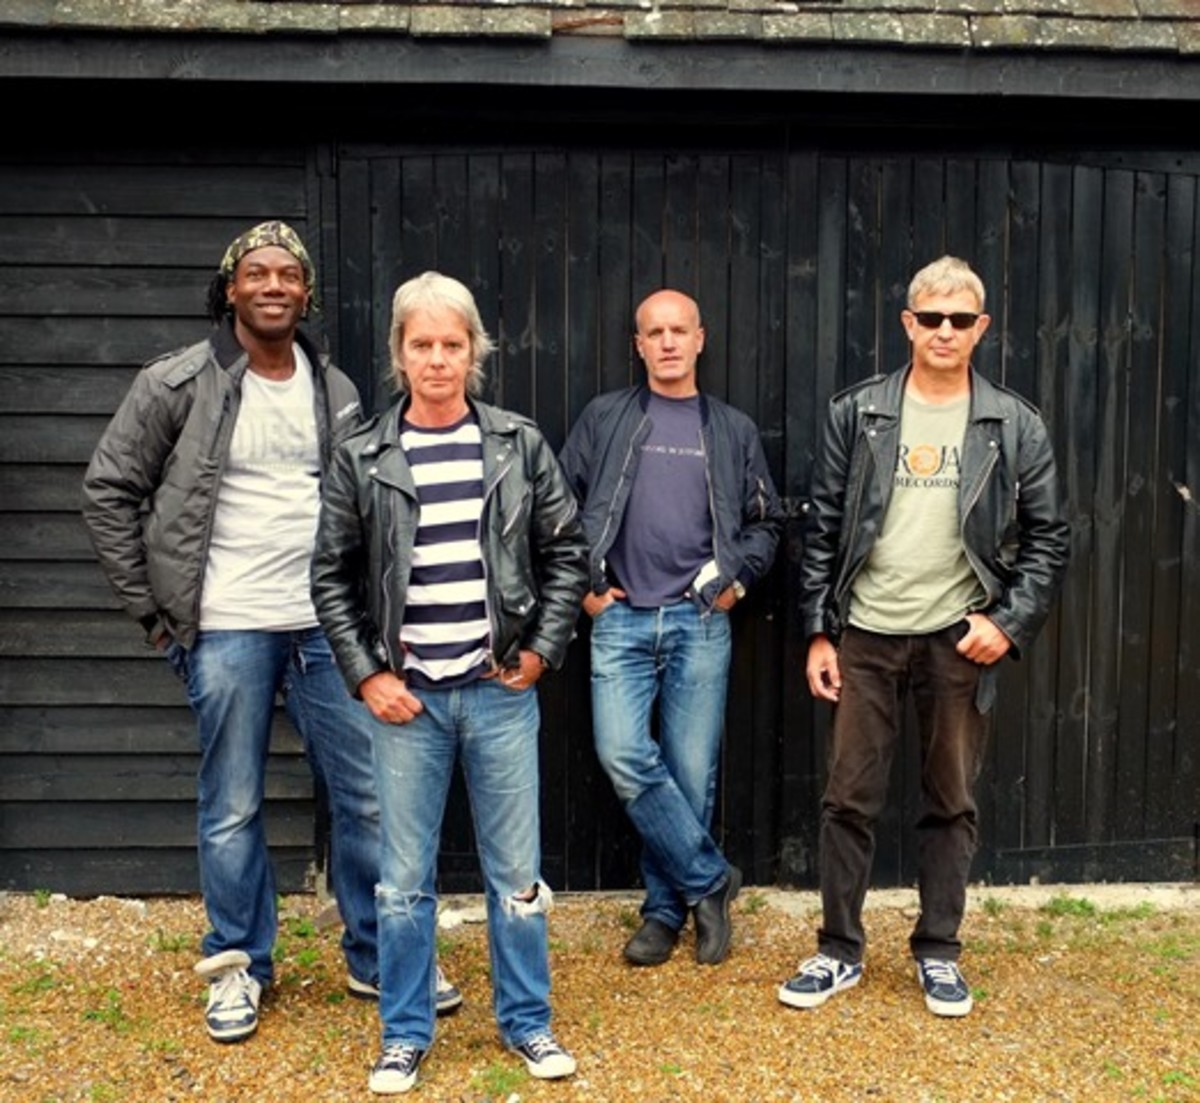 The Vapors' lineup for their shows this year is (left to right) Michael Bowes (drums), Dave Fenton (lead vocals and guitar), Edward Bazalgette (lead guitar) and Steve Smith (bass and vocals).